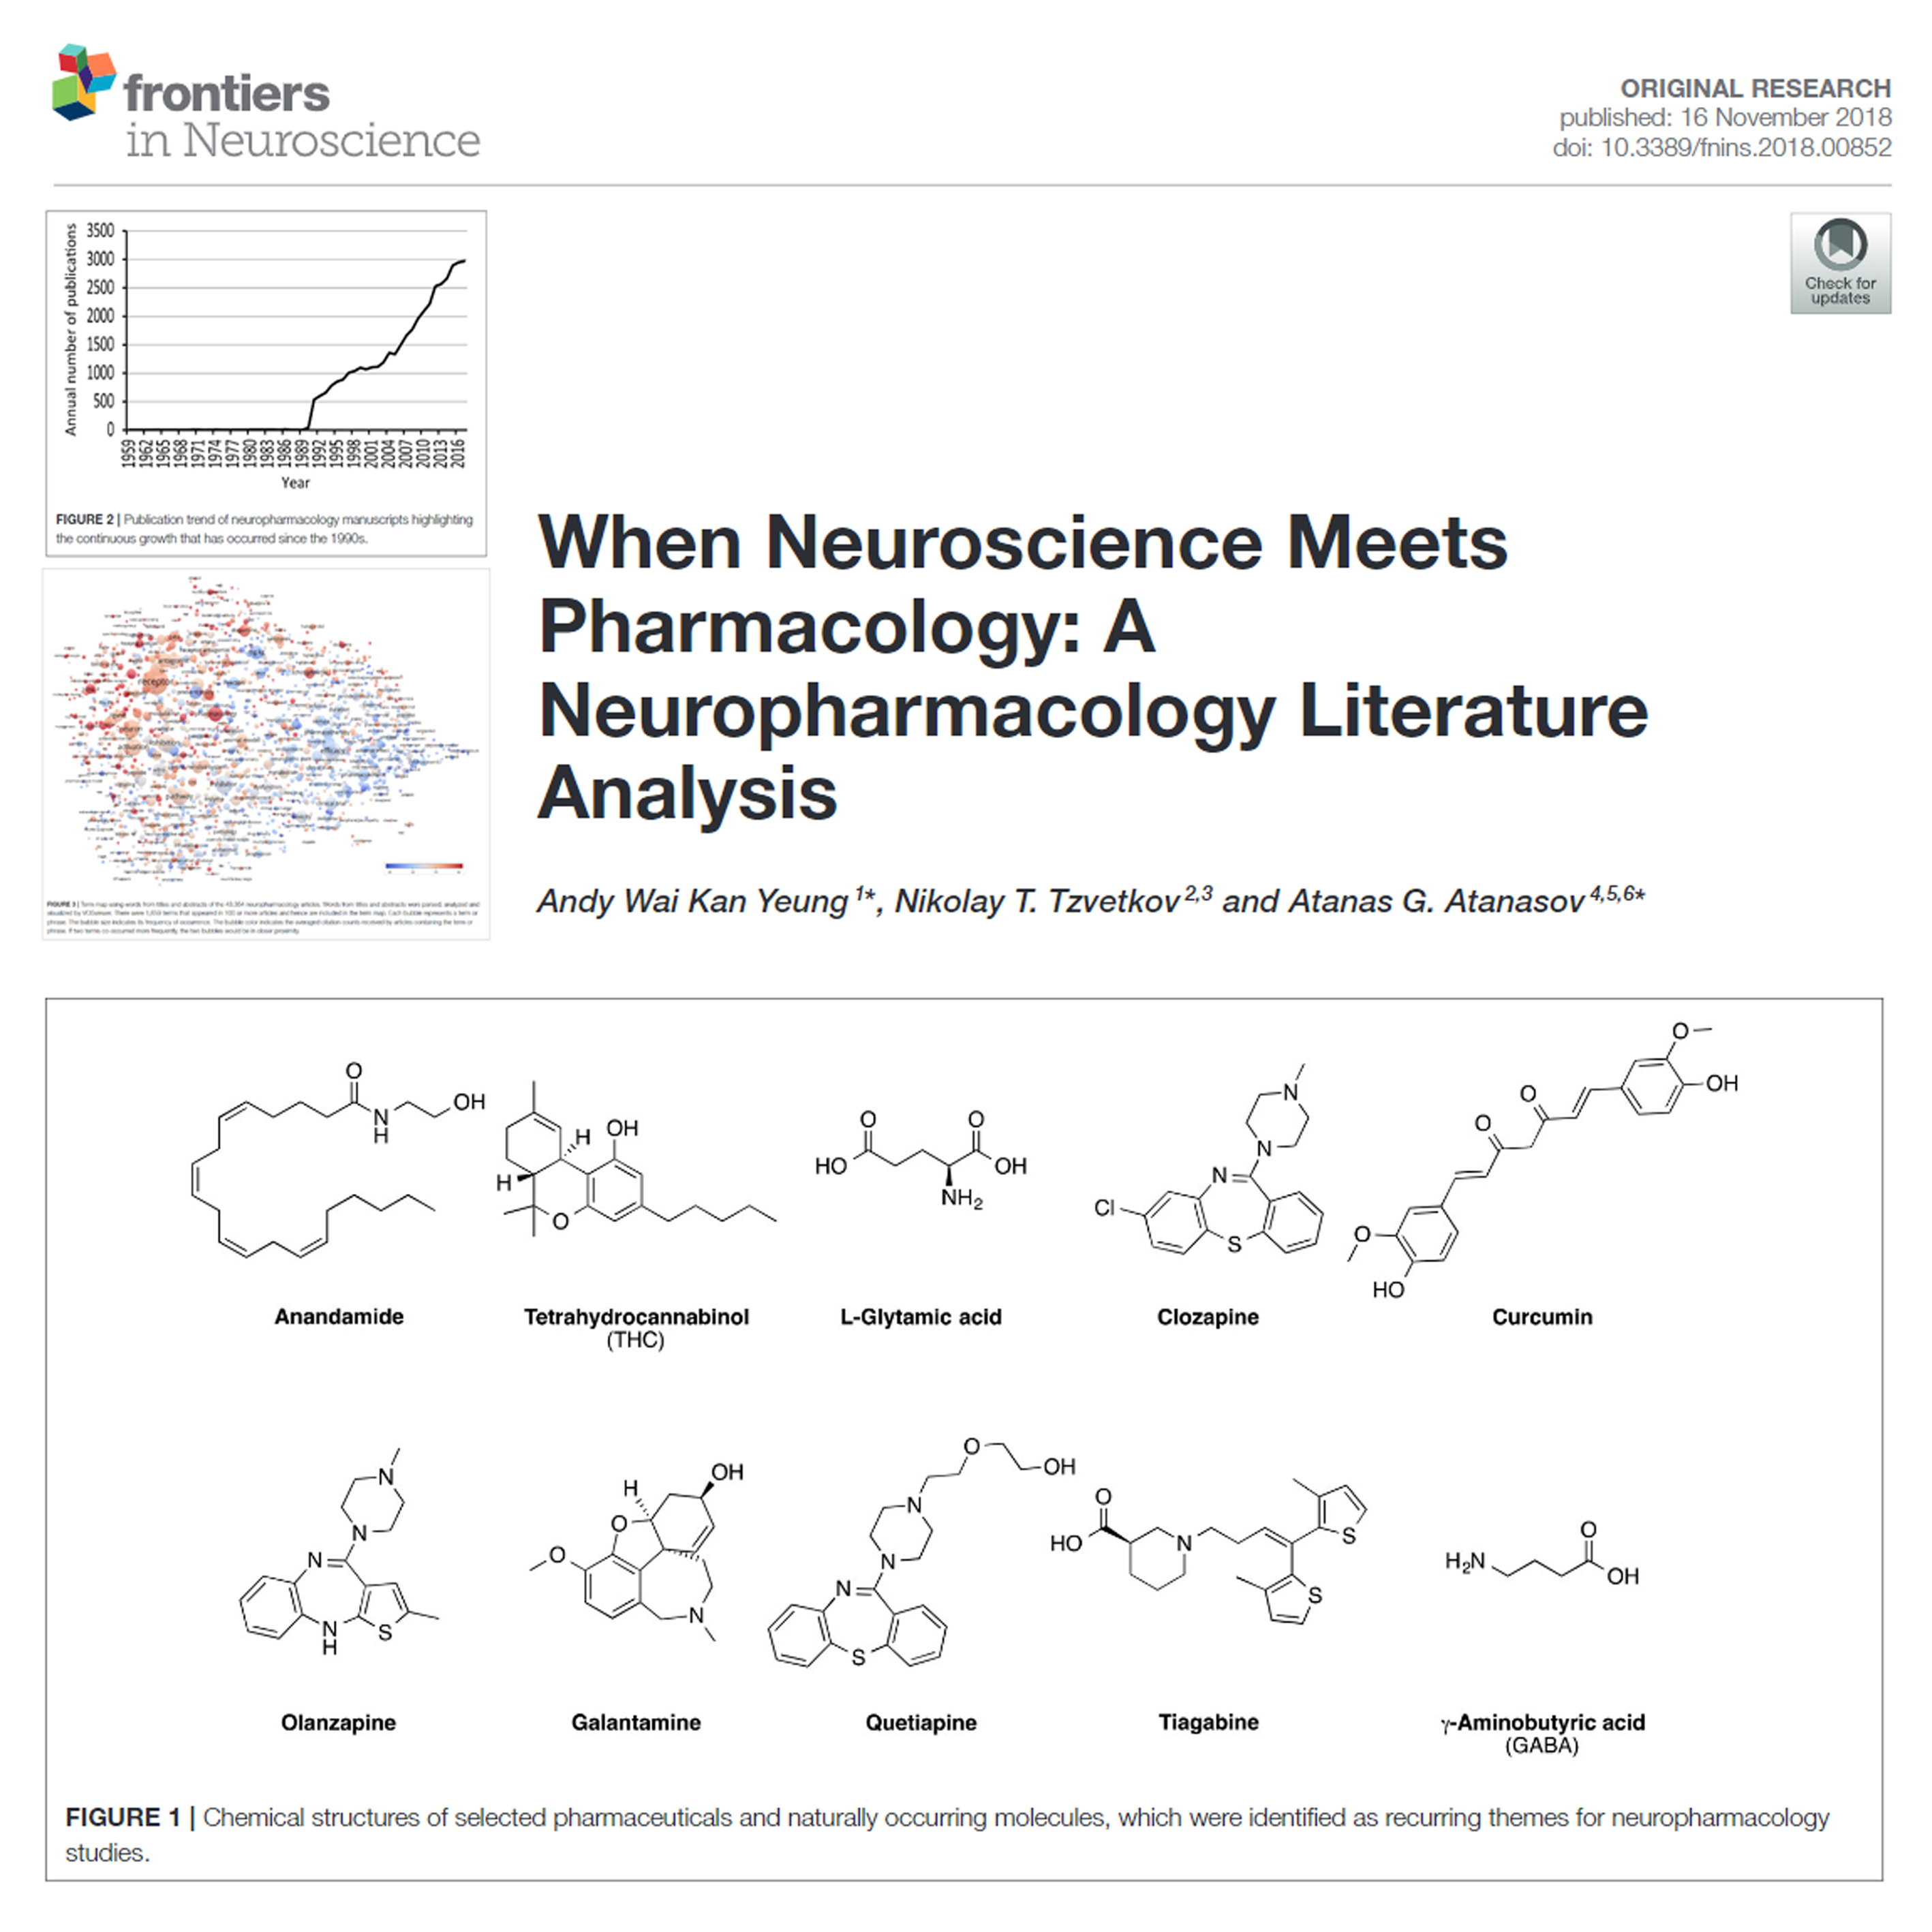 When Neuroscience Meets Pharmacology: A Neuropharmacology Literature Analysis